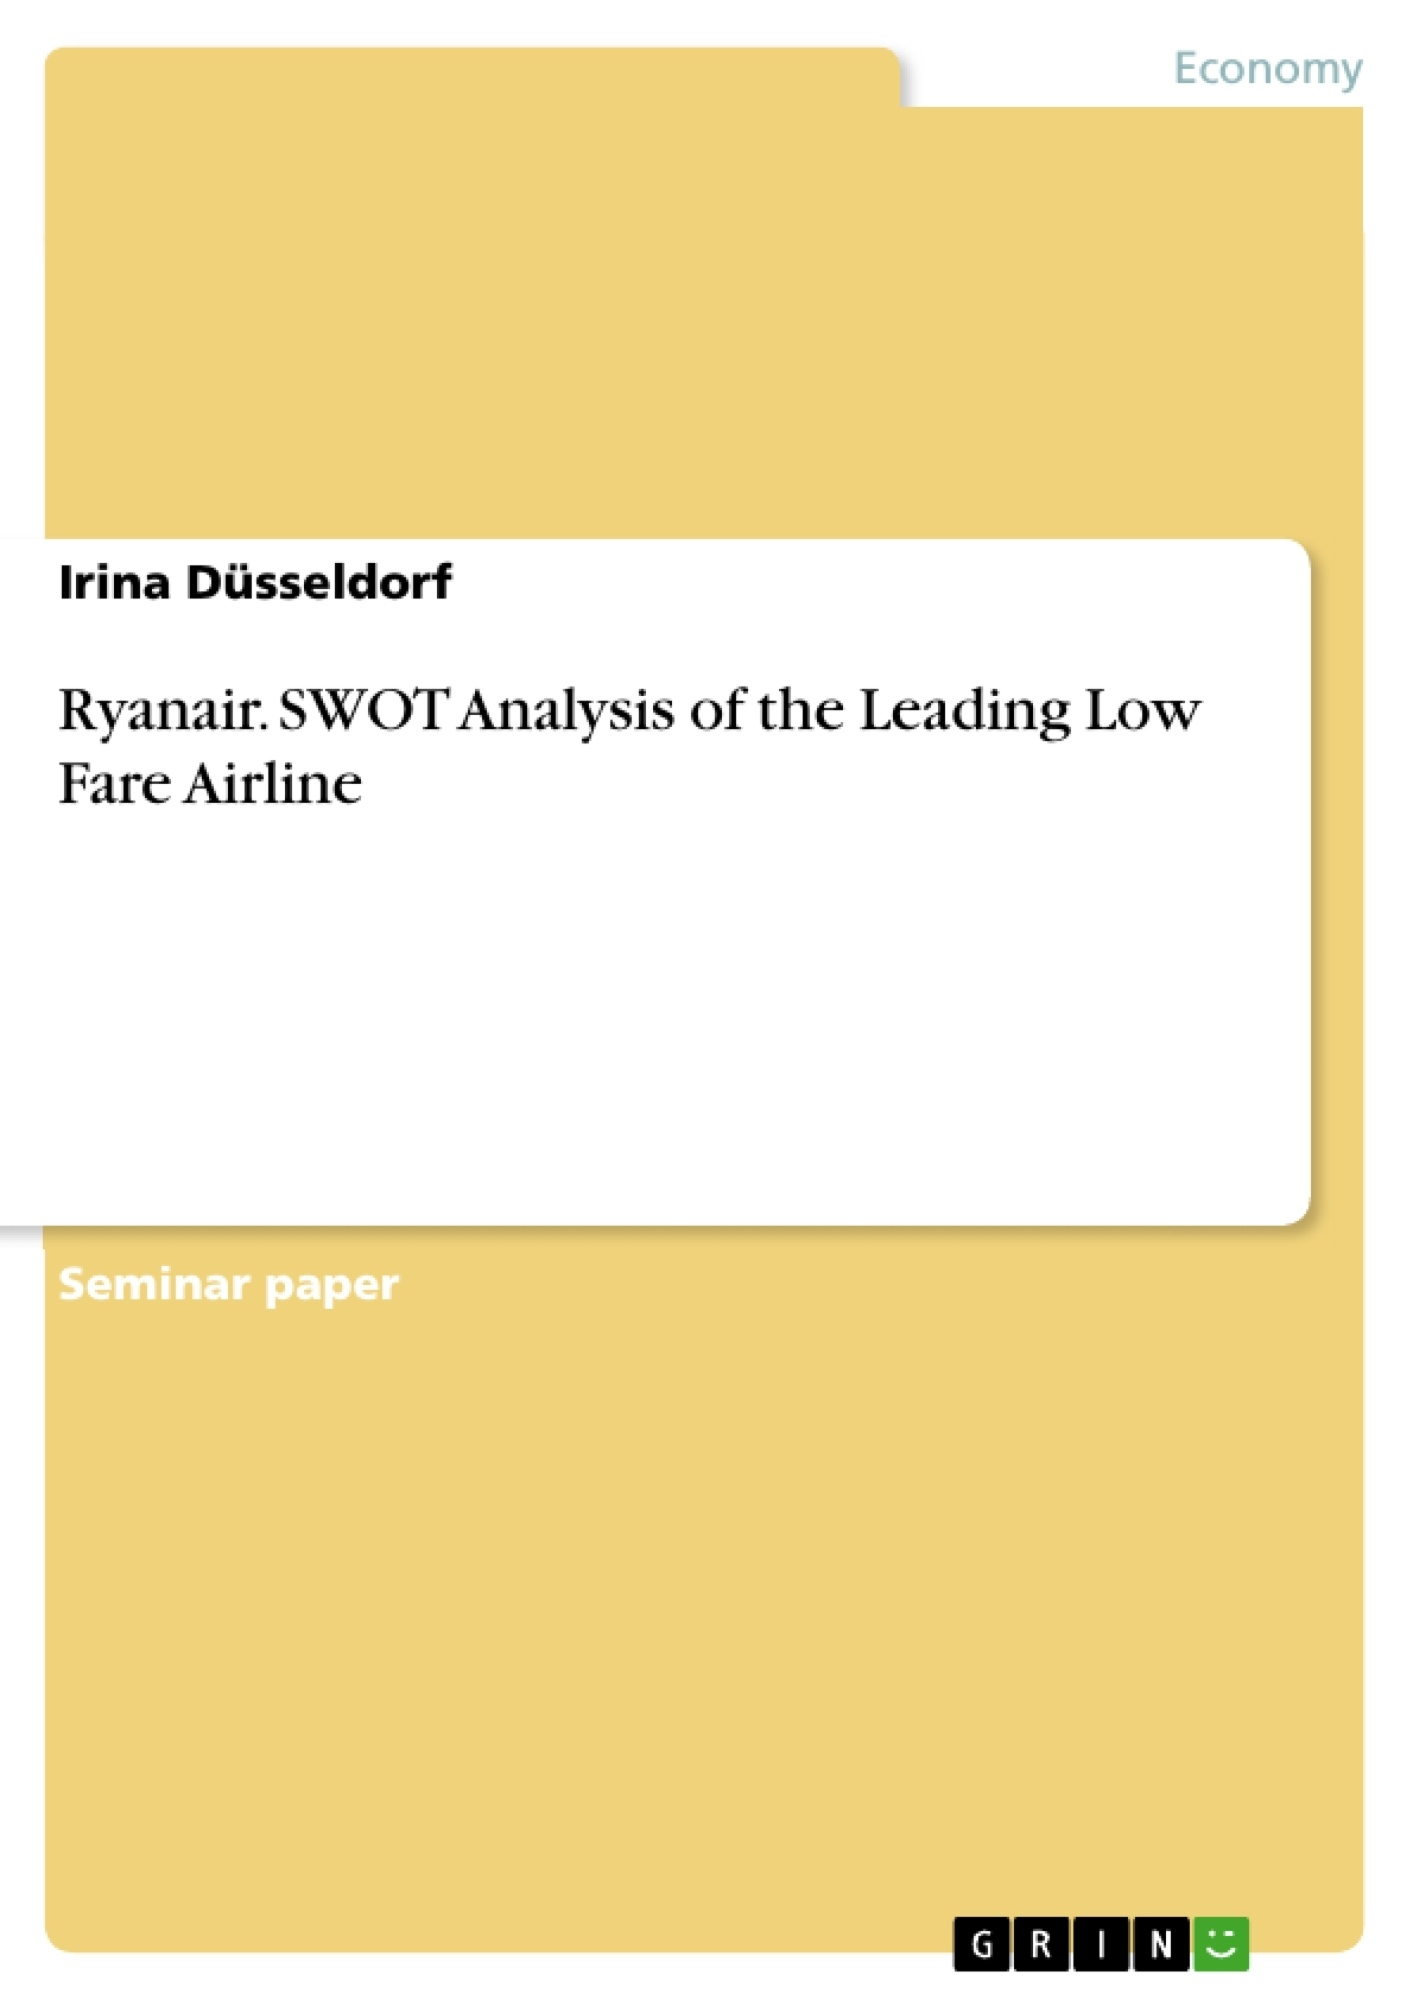 Title: Ryanair. SWOT Analysis of the Leading Low Fare Airline